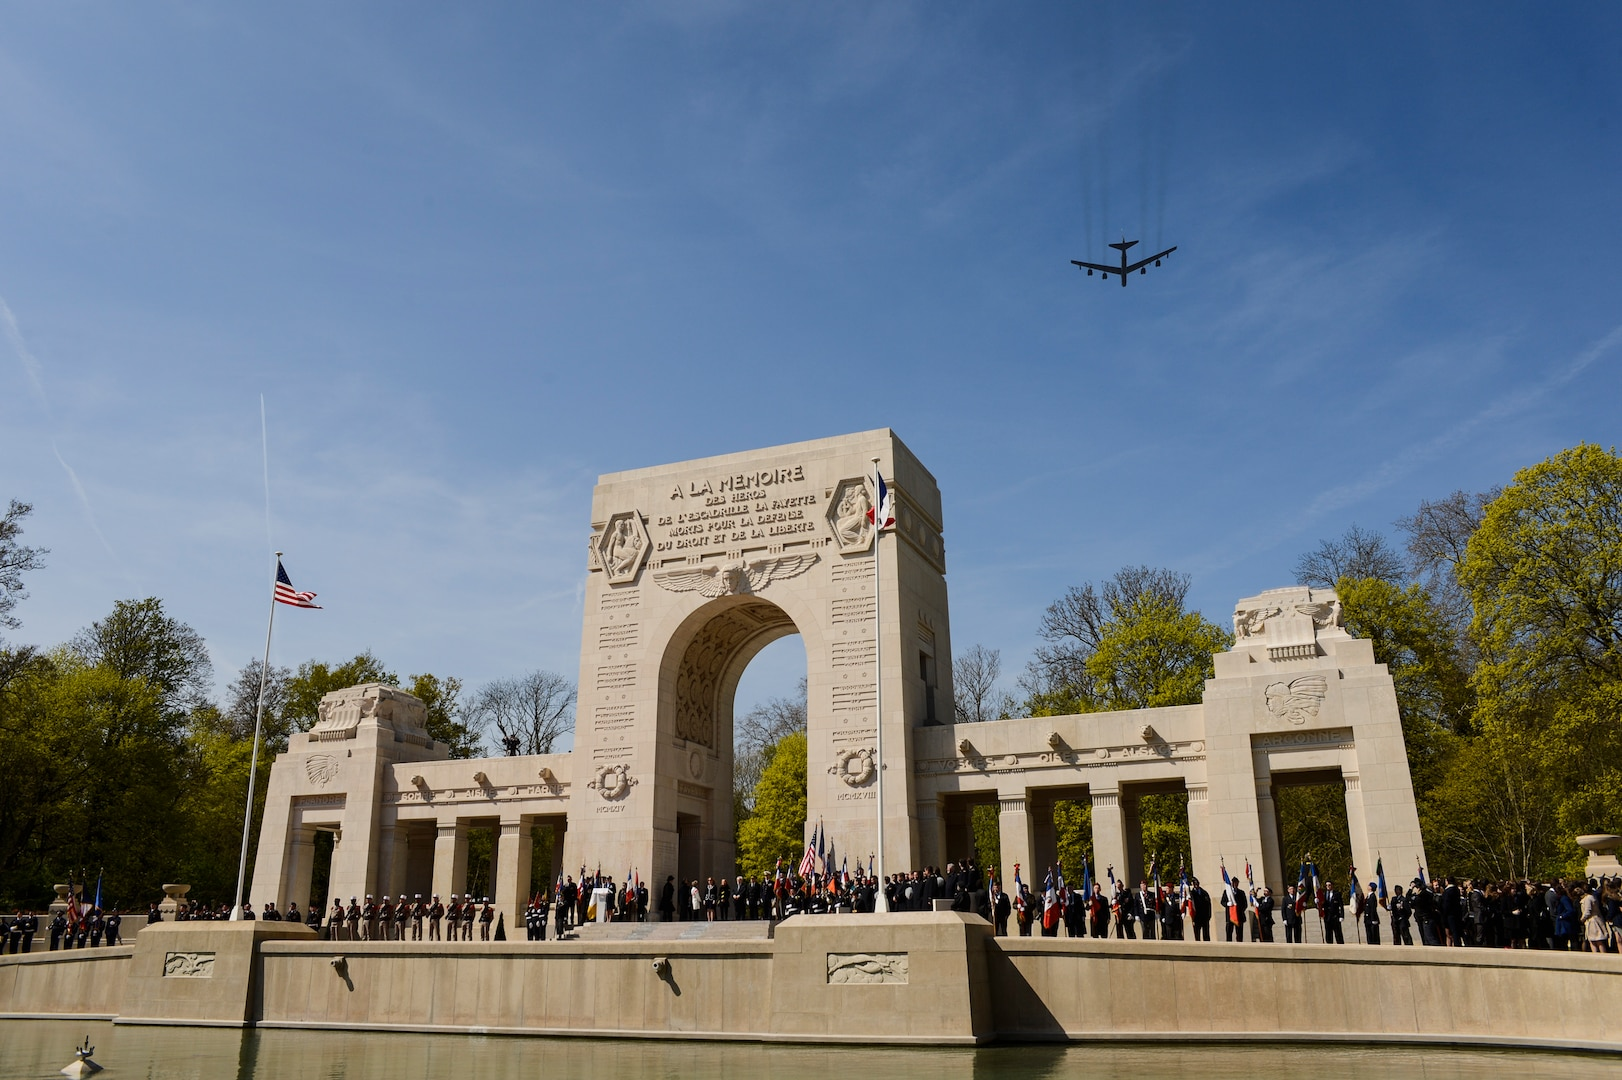 A U.S. Air Force B-52 Stratofortress strategic bomber from Minot Air Force Base, N.D., flies over the Lafayette Escadrille Memorial in Marnes-la-Coquette, France, April 20, 2016, during a ceremony honoring the 268 Americans who joined the French air force before the U.S. officially entered World War I. In addition to the B-52, four U.S. Air Force F-22 Raptors, four French air force Mirage 2000Ns and a World War I-era Steerman PT-17 biplane performed flyovers during the ceremony commemorating the 100th anniversary of the Lafayette Escadrille formation. The flight was part of long-range, B-52 sortie to train and integrate with the French Air Force. One of nine DoD unified combatant commands, USSTRATCOM has global strategic missions, assigned through the Unified Command Plan, which include strategic deterrence; space operations; cyberspace operations; joint electronic warfare; global strike; missile defense; intelligence, surveillance and reconnaissance; combating weapons of mass destruction; and analysis and targeting. (U.S. Air Force Photo by Tech. Sgt. Joshua DeMotts)